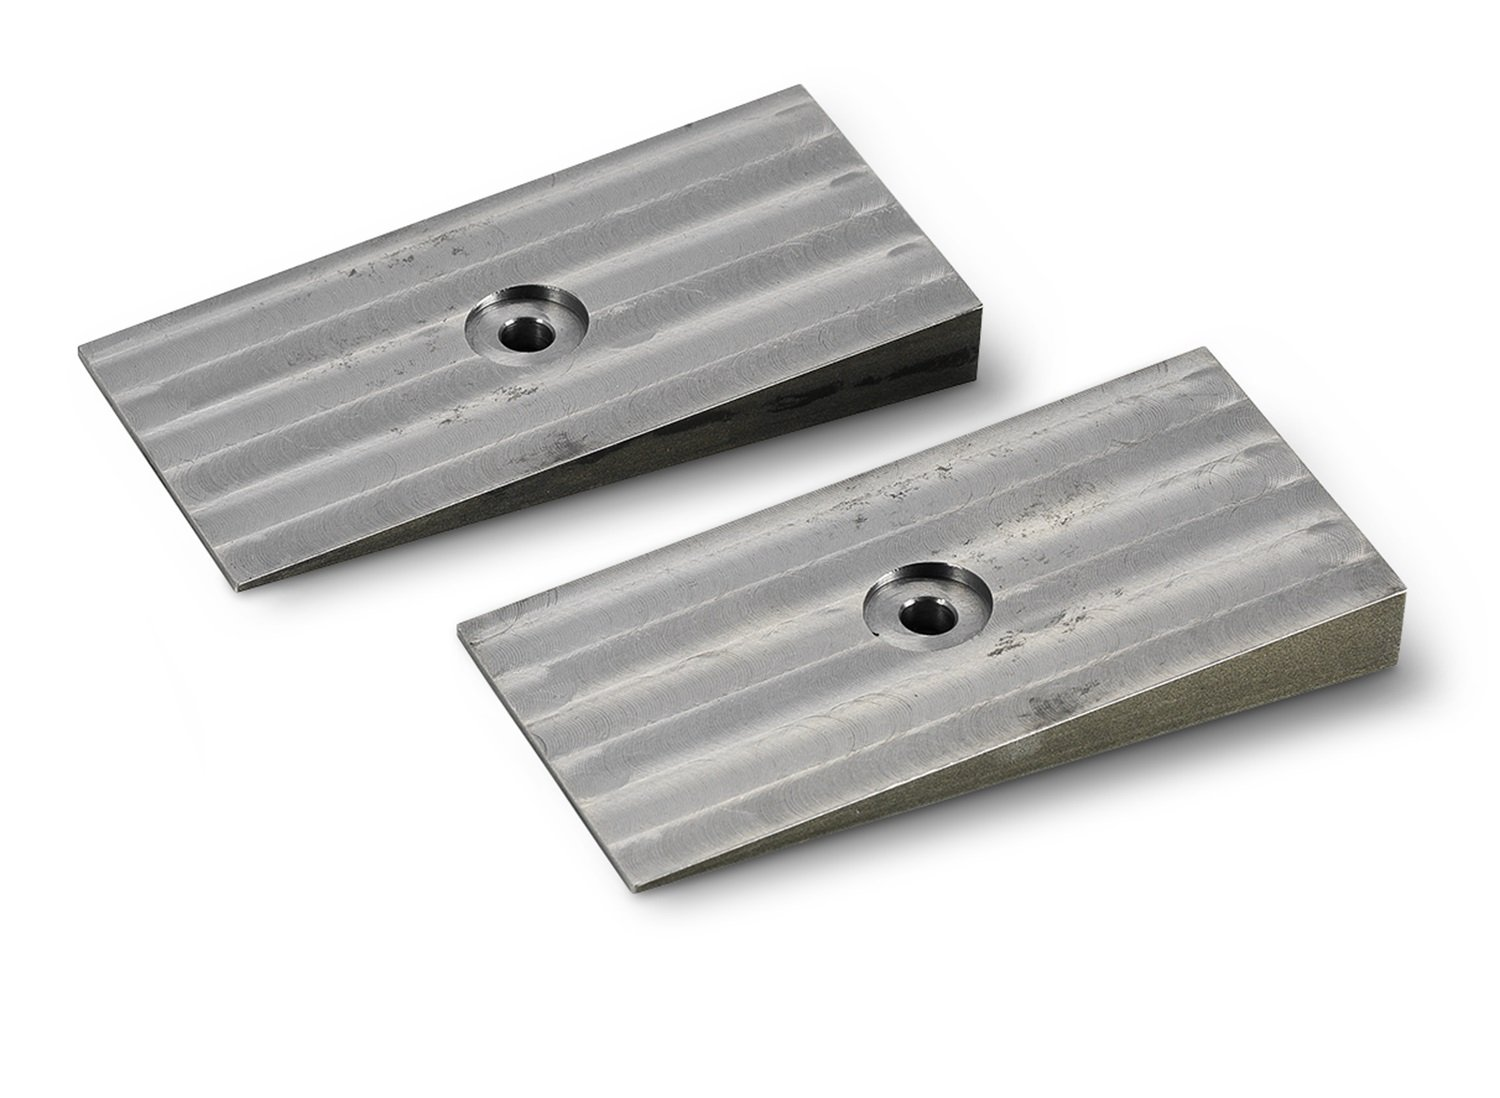 Warrior Products 800067 3' - 6 Degree Leaf Spring Shims WRR:800067